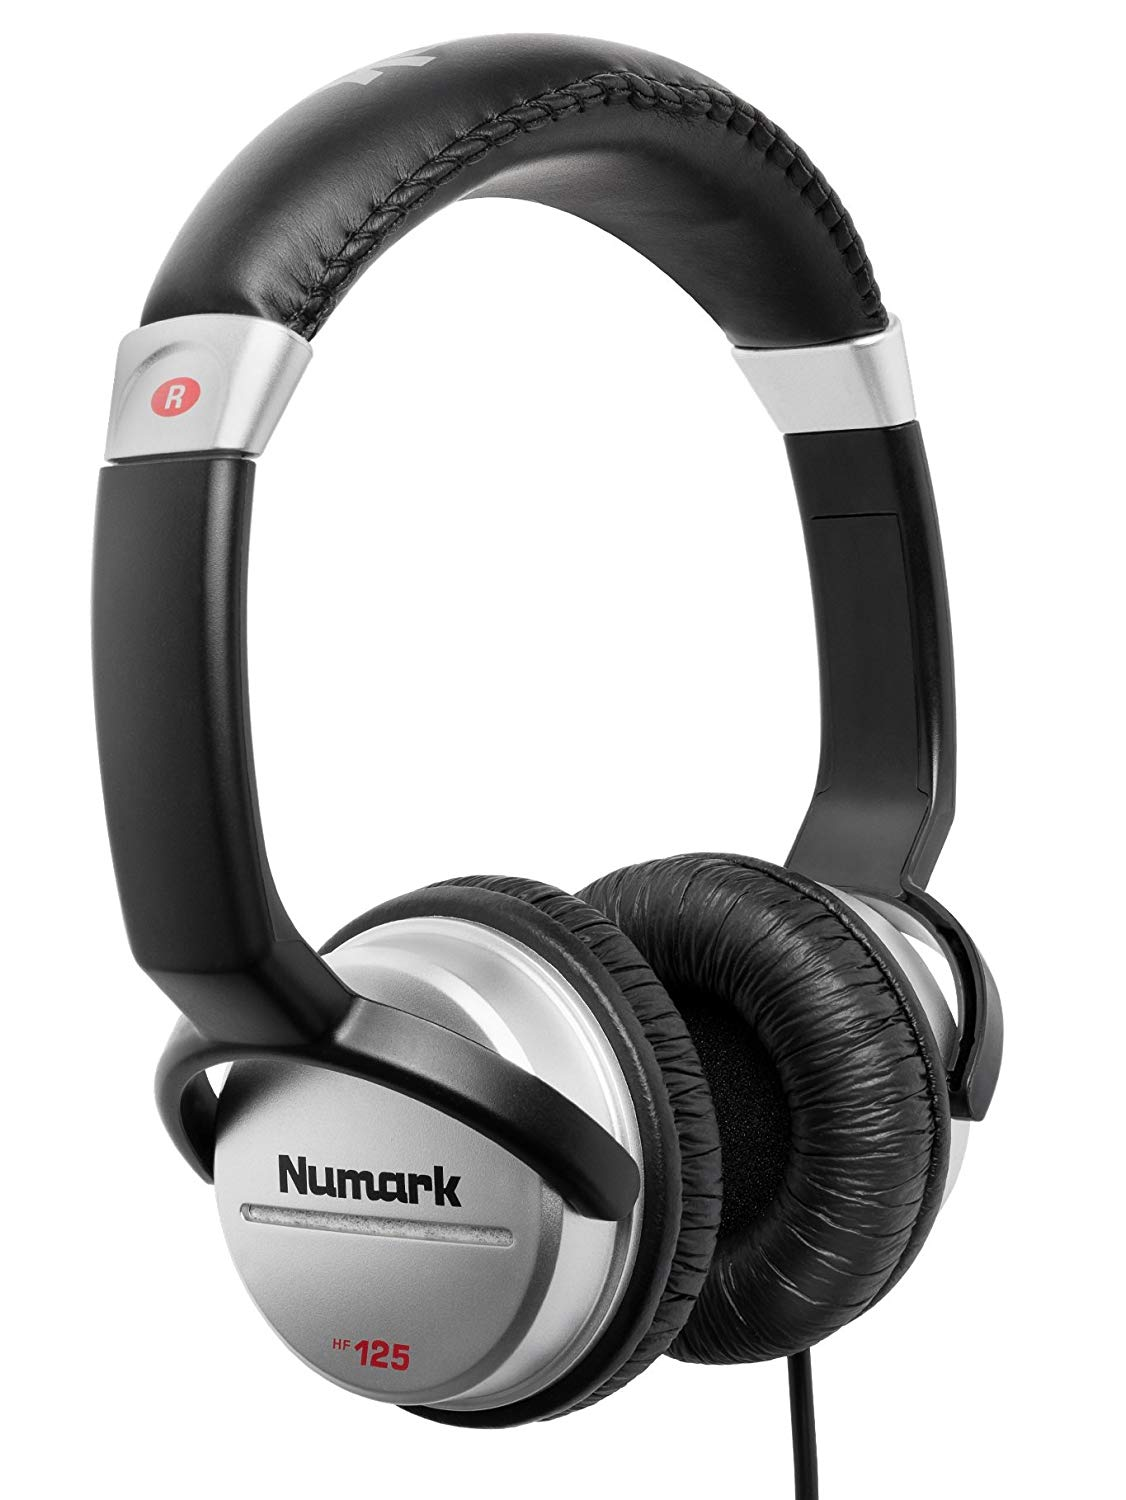 Ultra-Portable Professional DJ Headphones With 6ft Cable, 40 mm Drivers